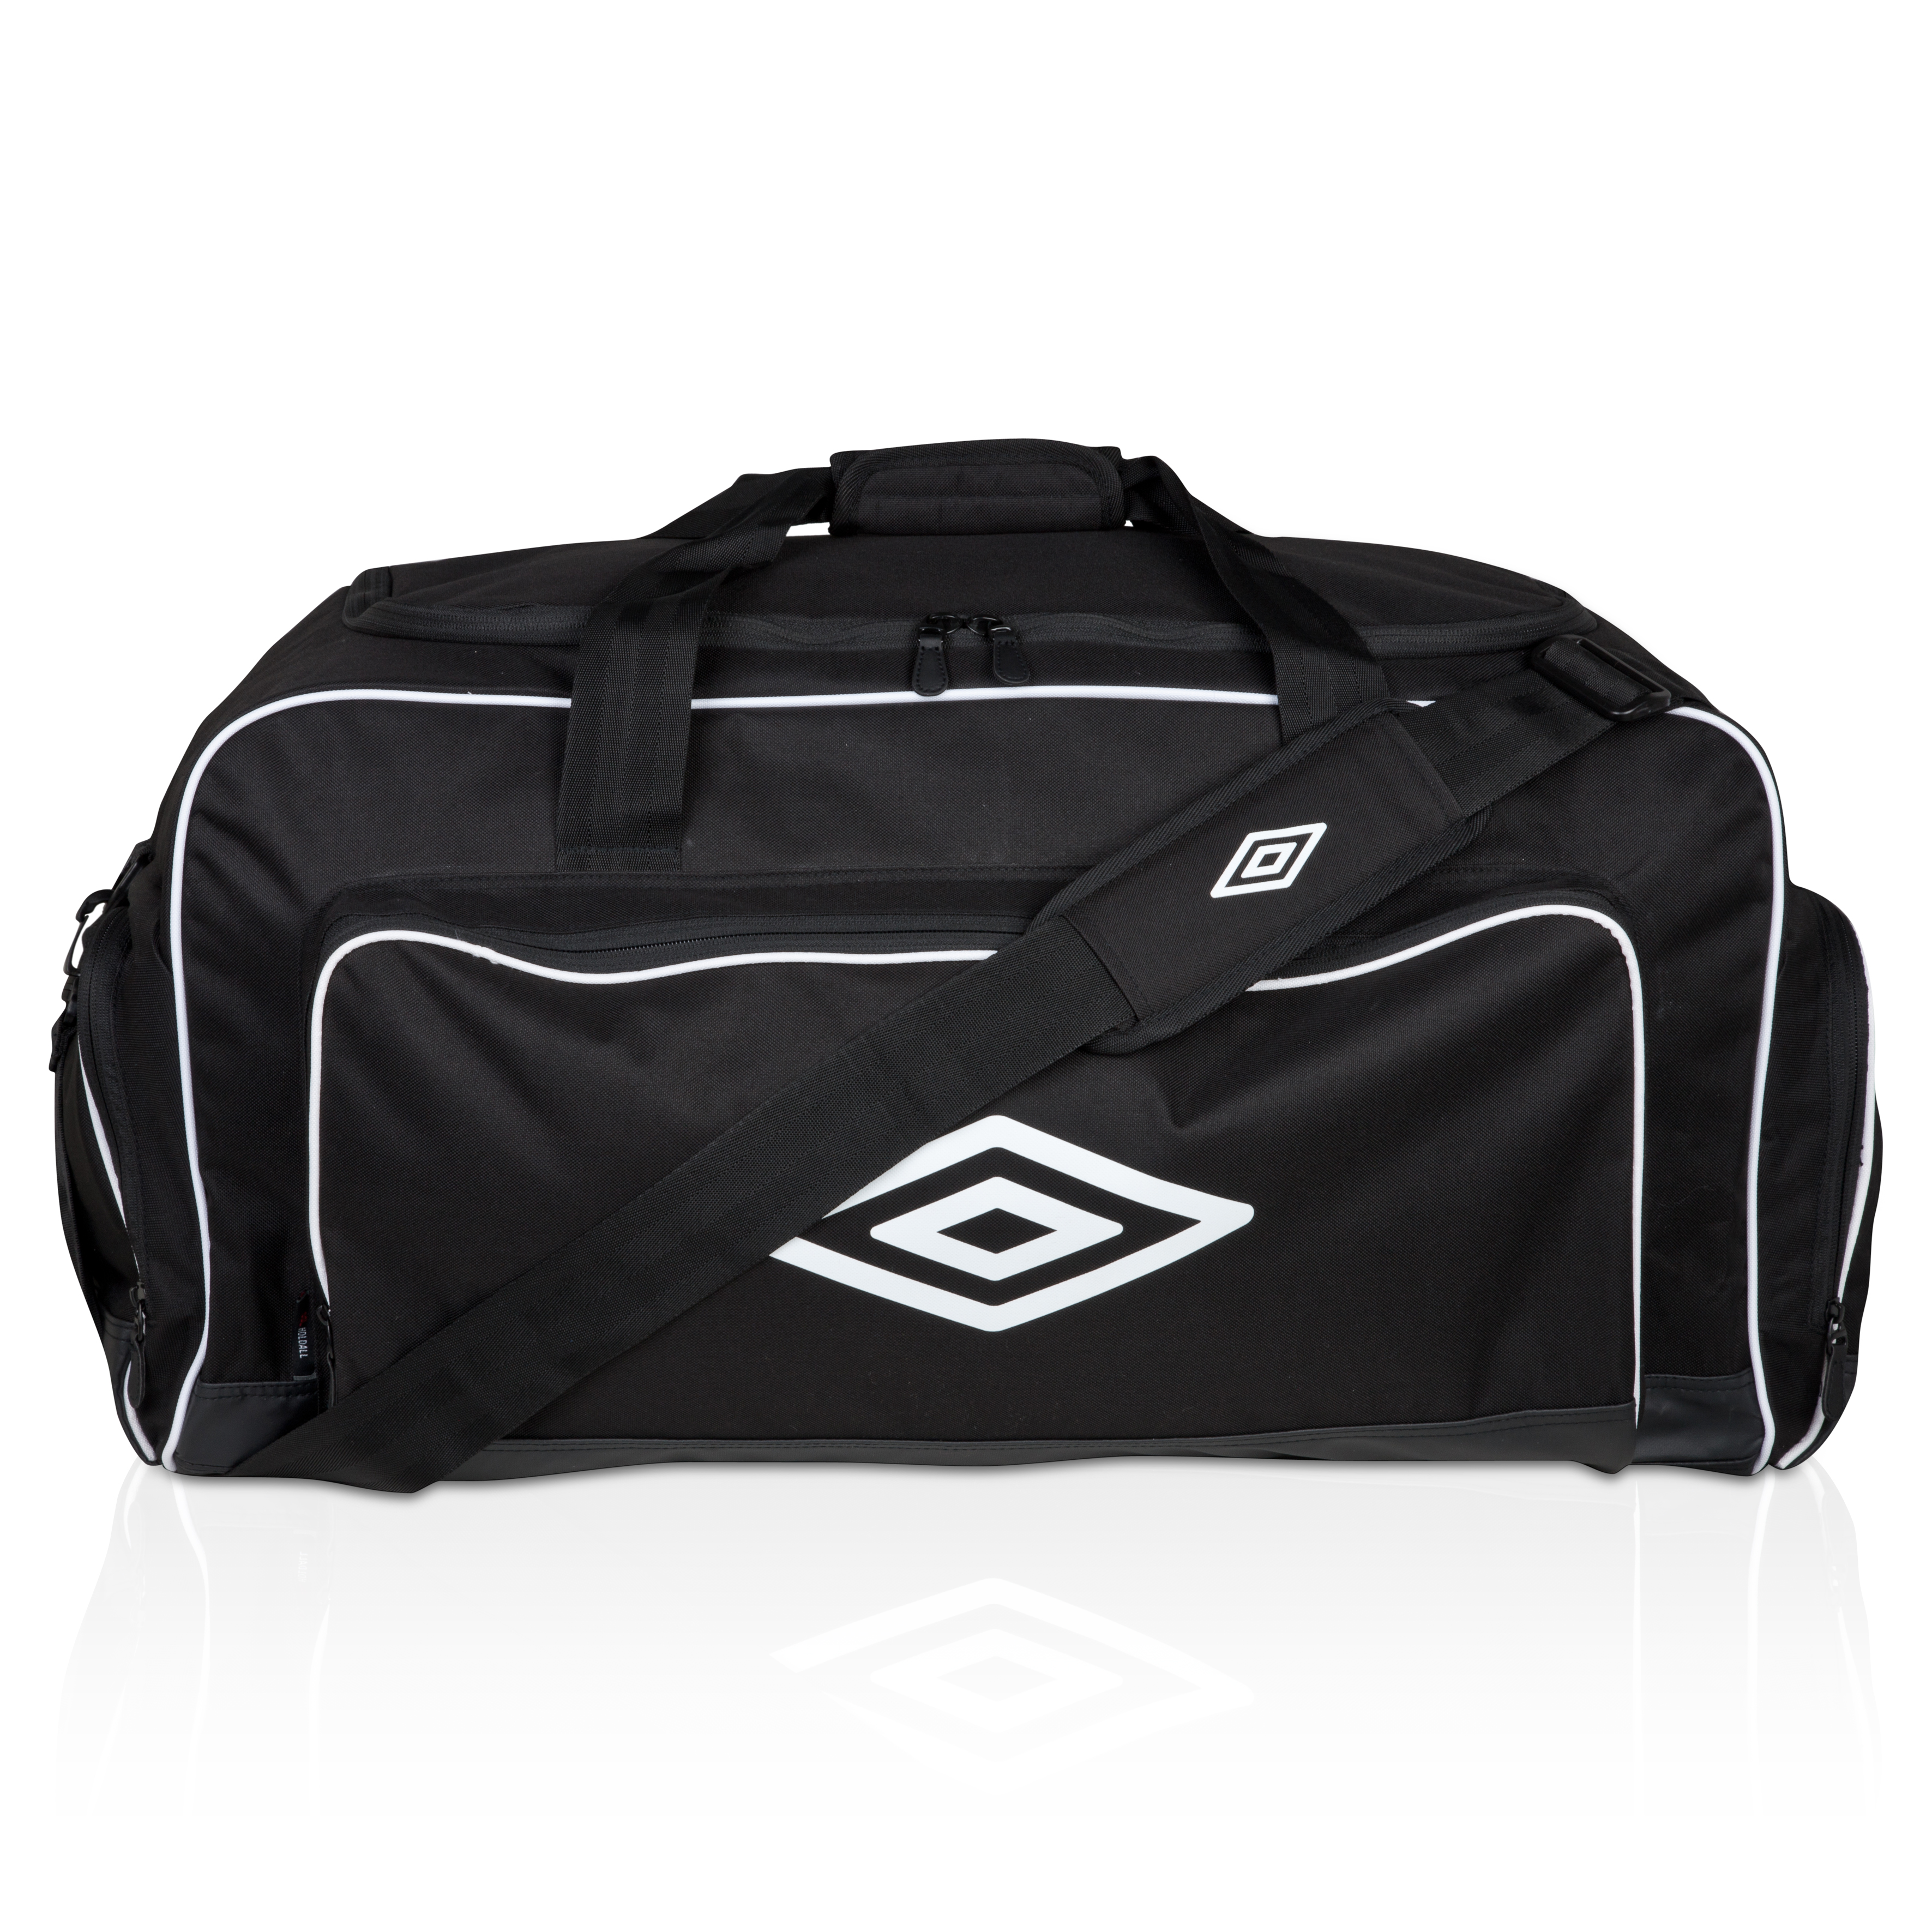 Umbro Large Holdall - Black / White